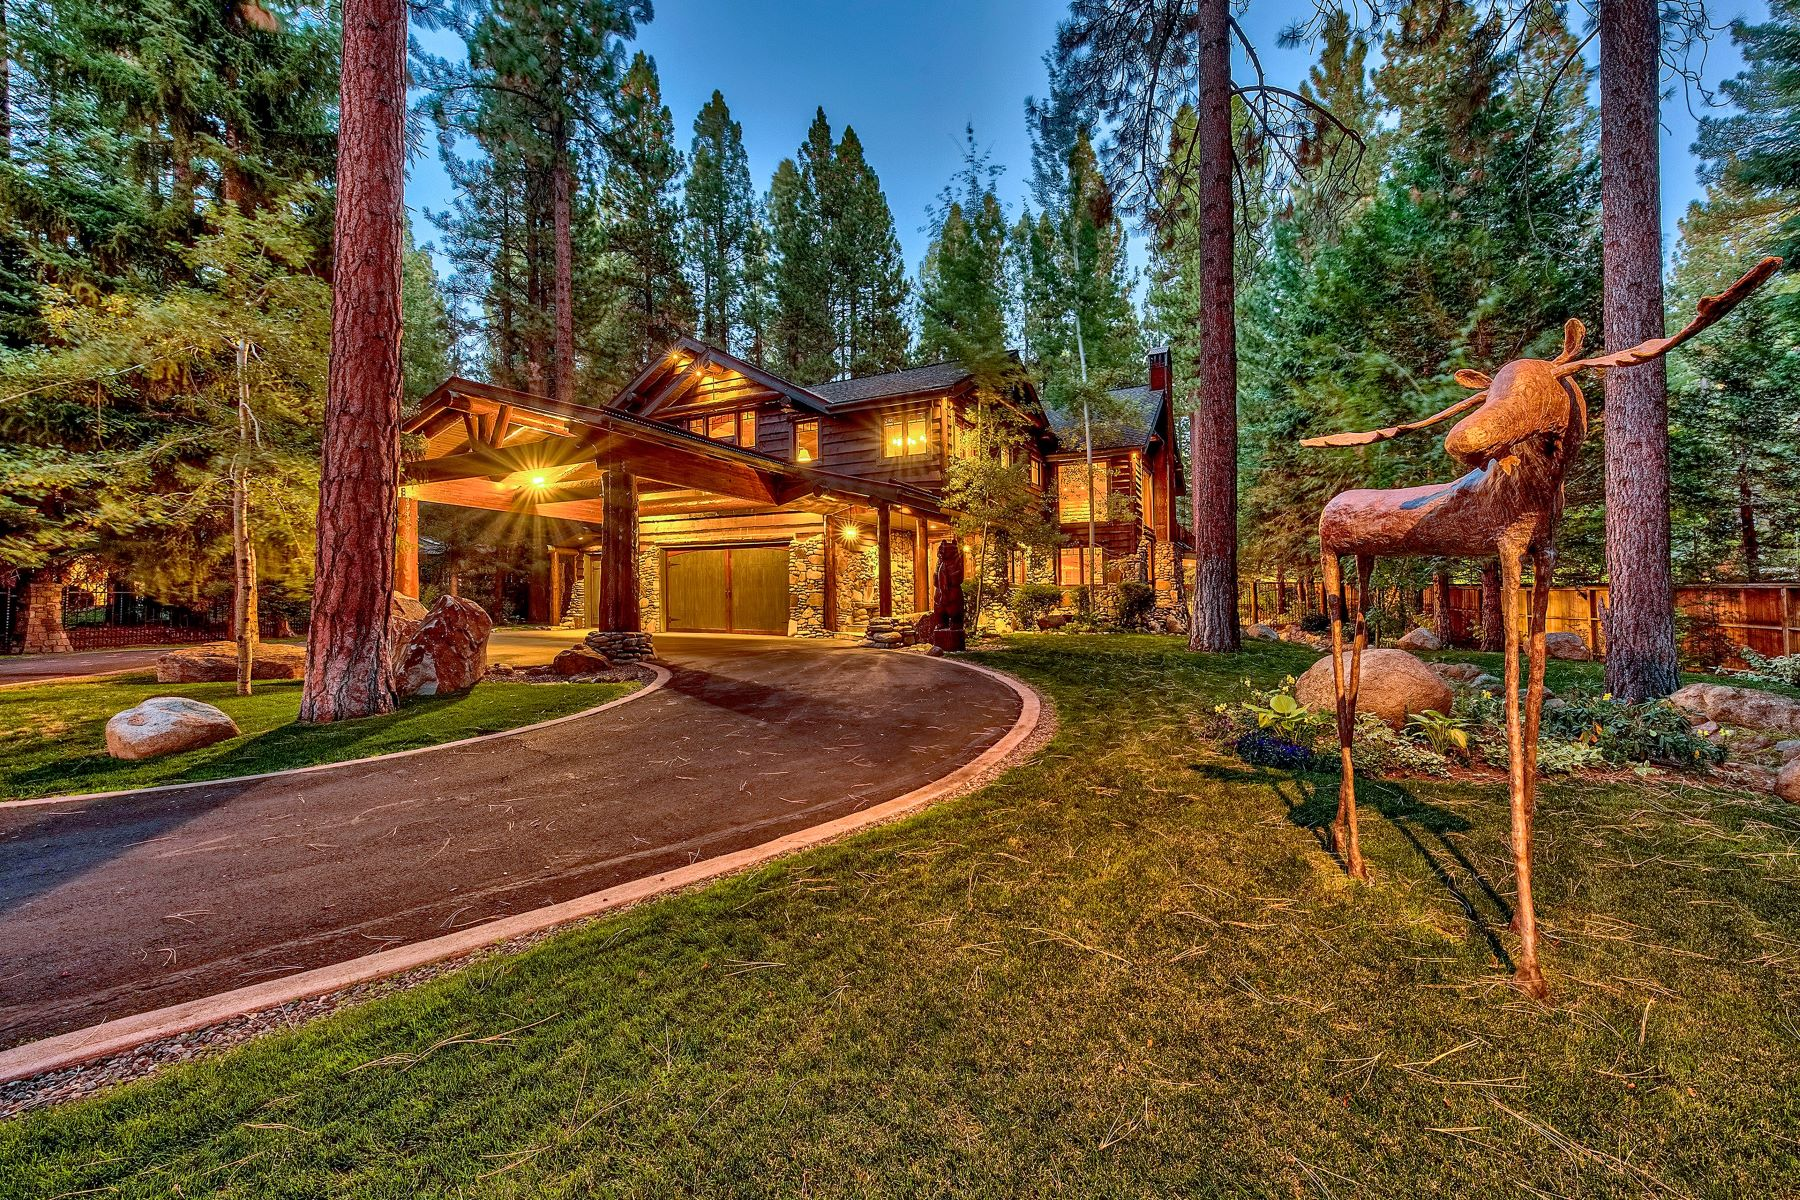 Single Family Homes for Active at Magnificent Tahoe Mountain Lodge 1088 Lakeshore Blvd Incline Village, Nevada 89451 United States